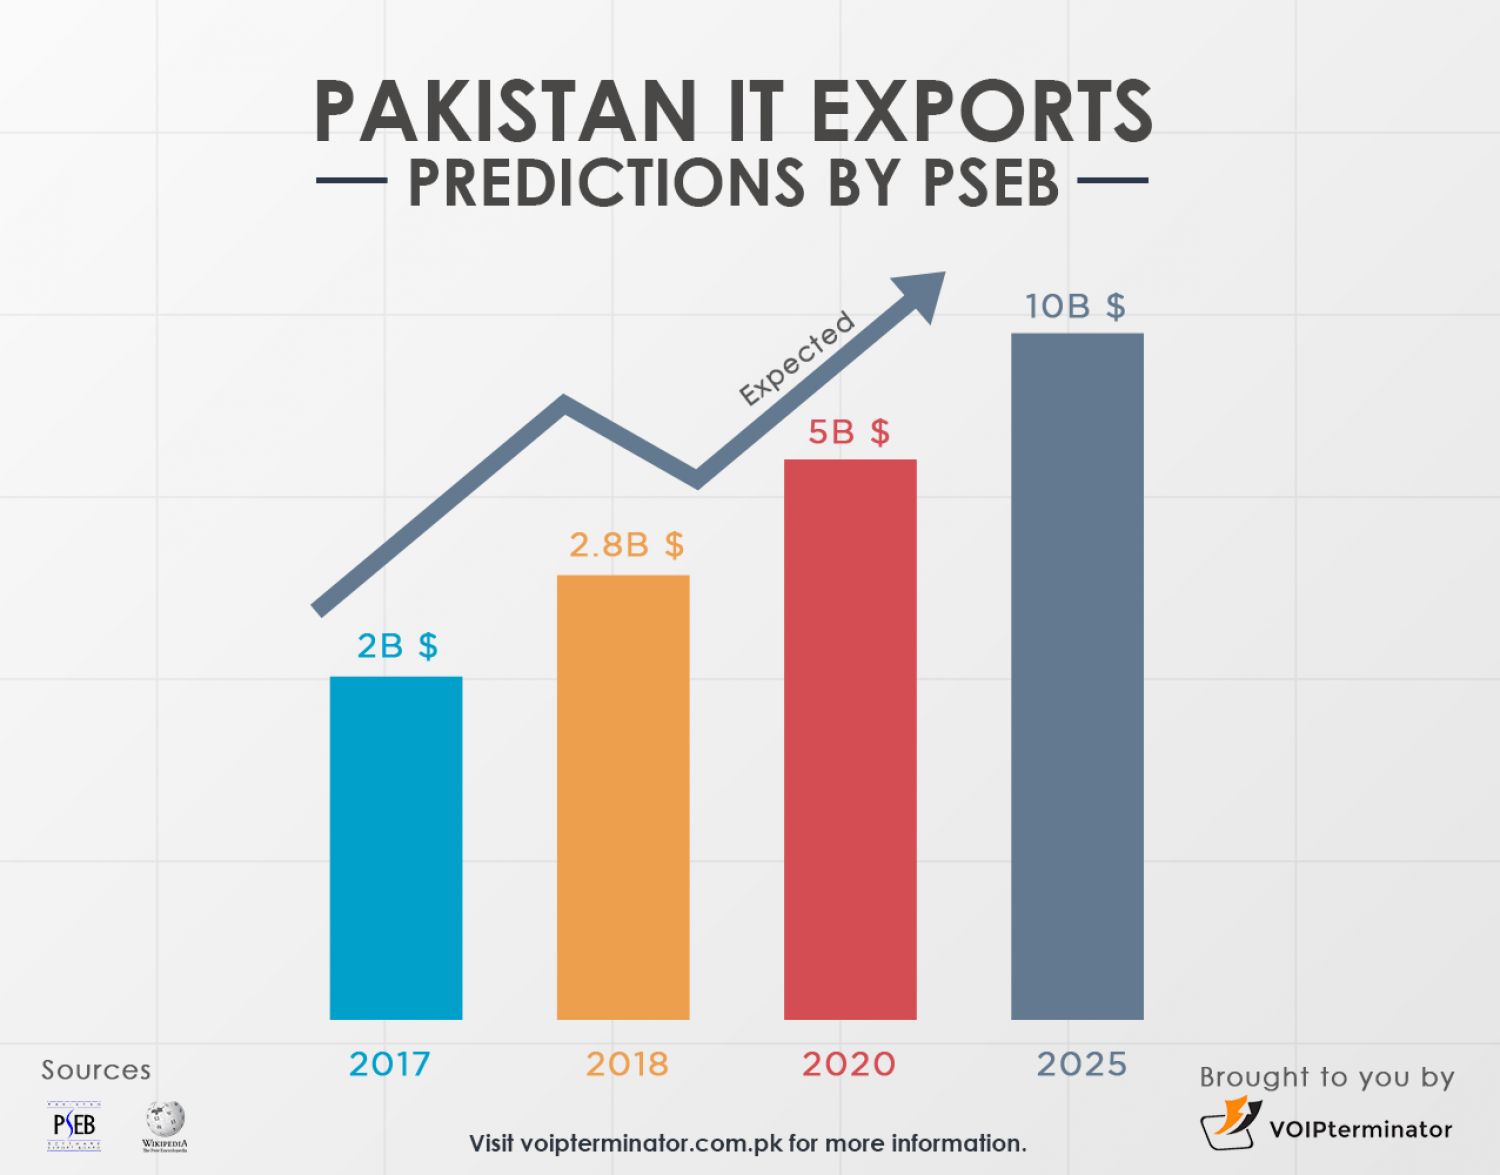 PSEB Predictions on Pakistan IT Exports Infographic